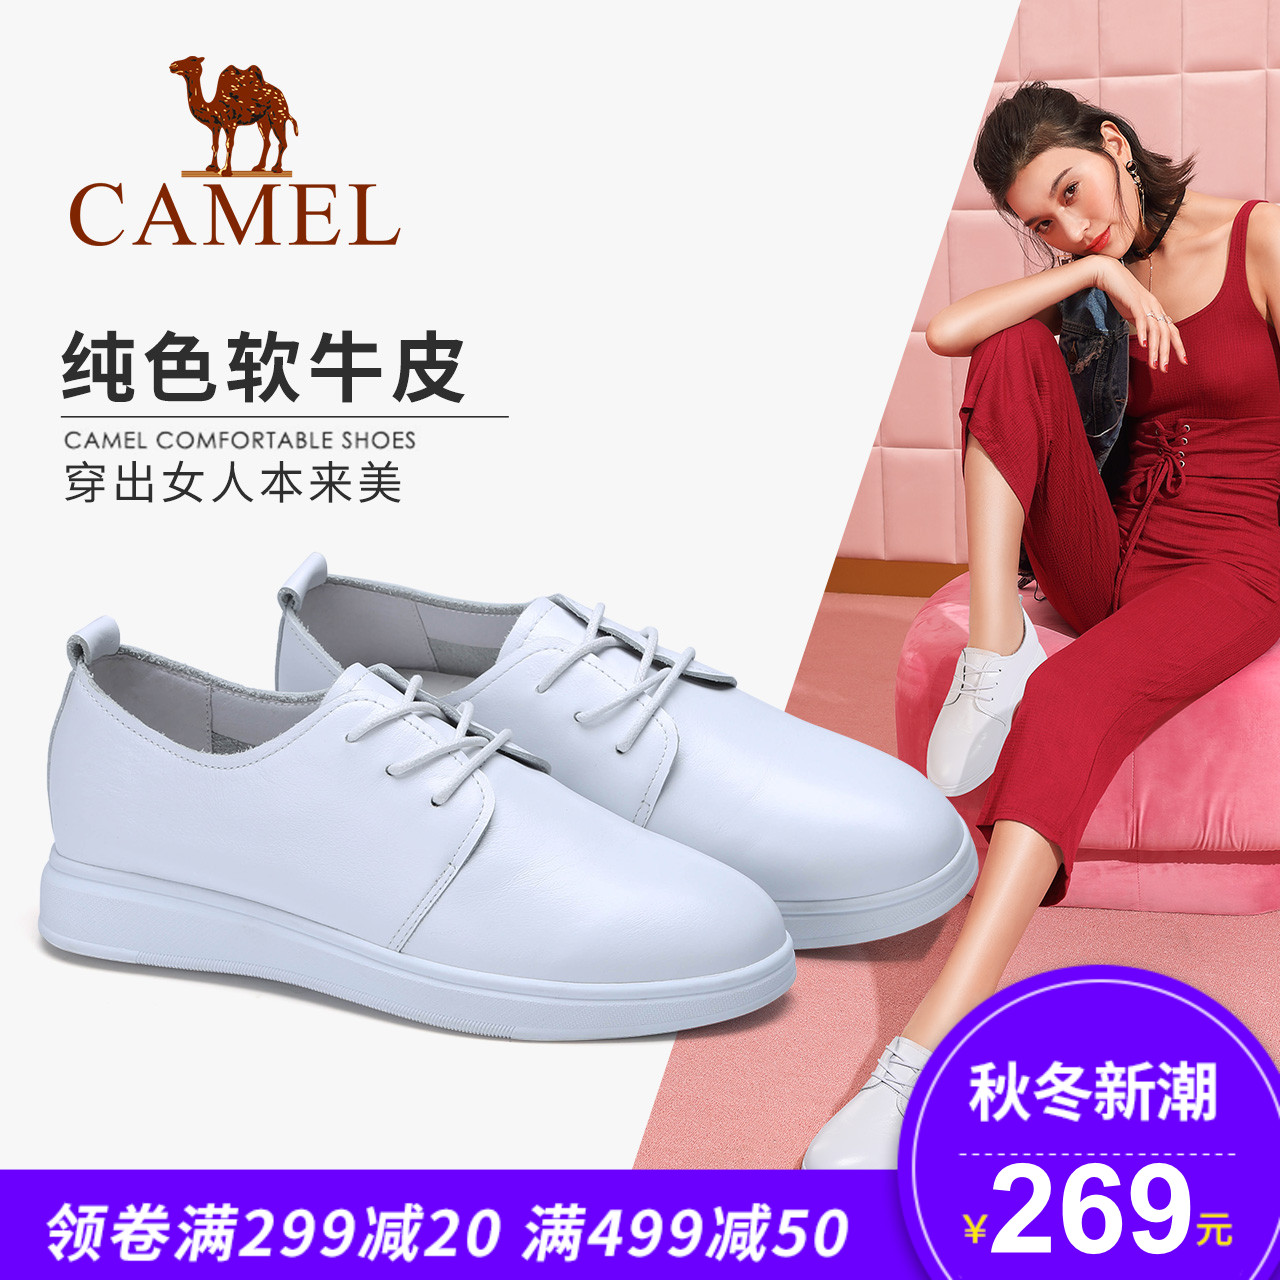 Camel women's shoes 2018 autumn light cushioning fashion white shoes female outdoor leisure commute student leather shoes